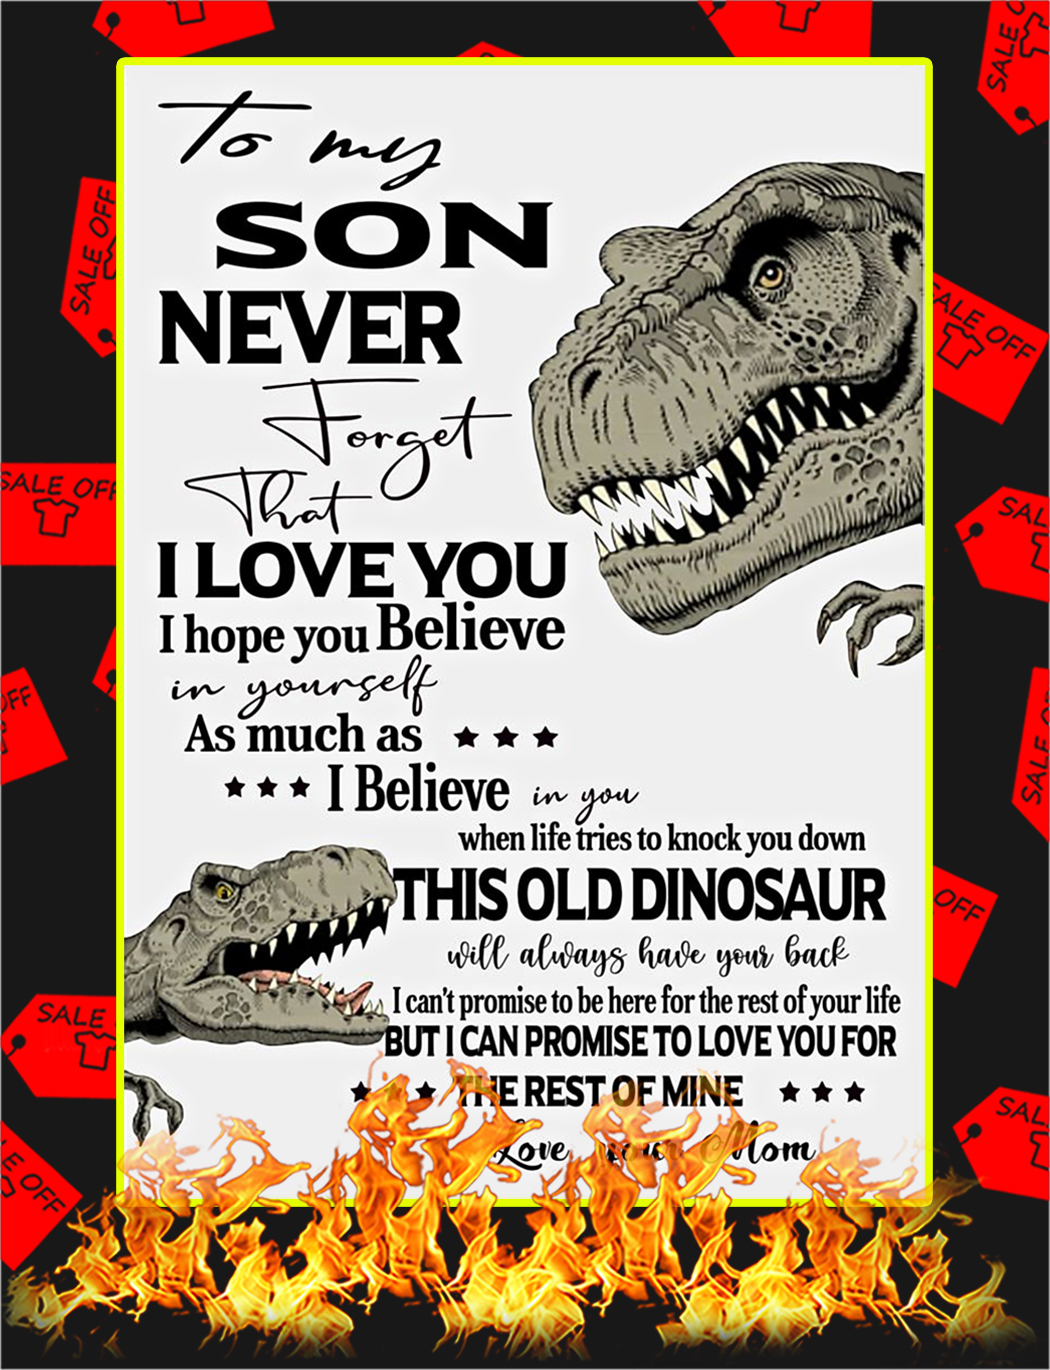 Dinosaurs To My Son Mom Poster - A3